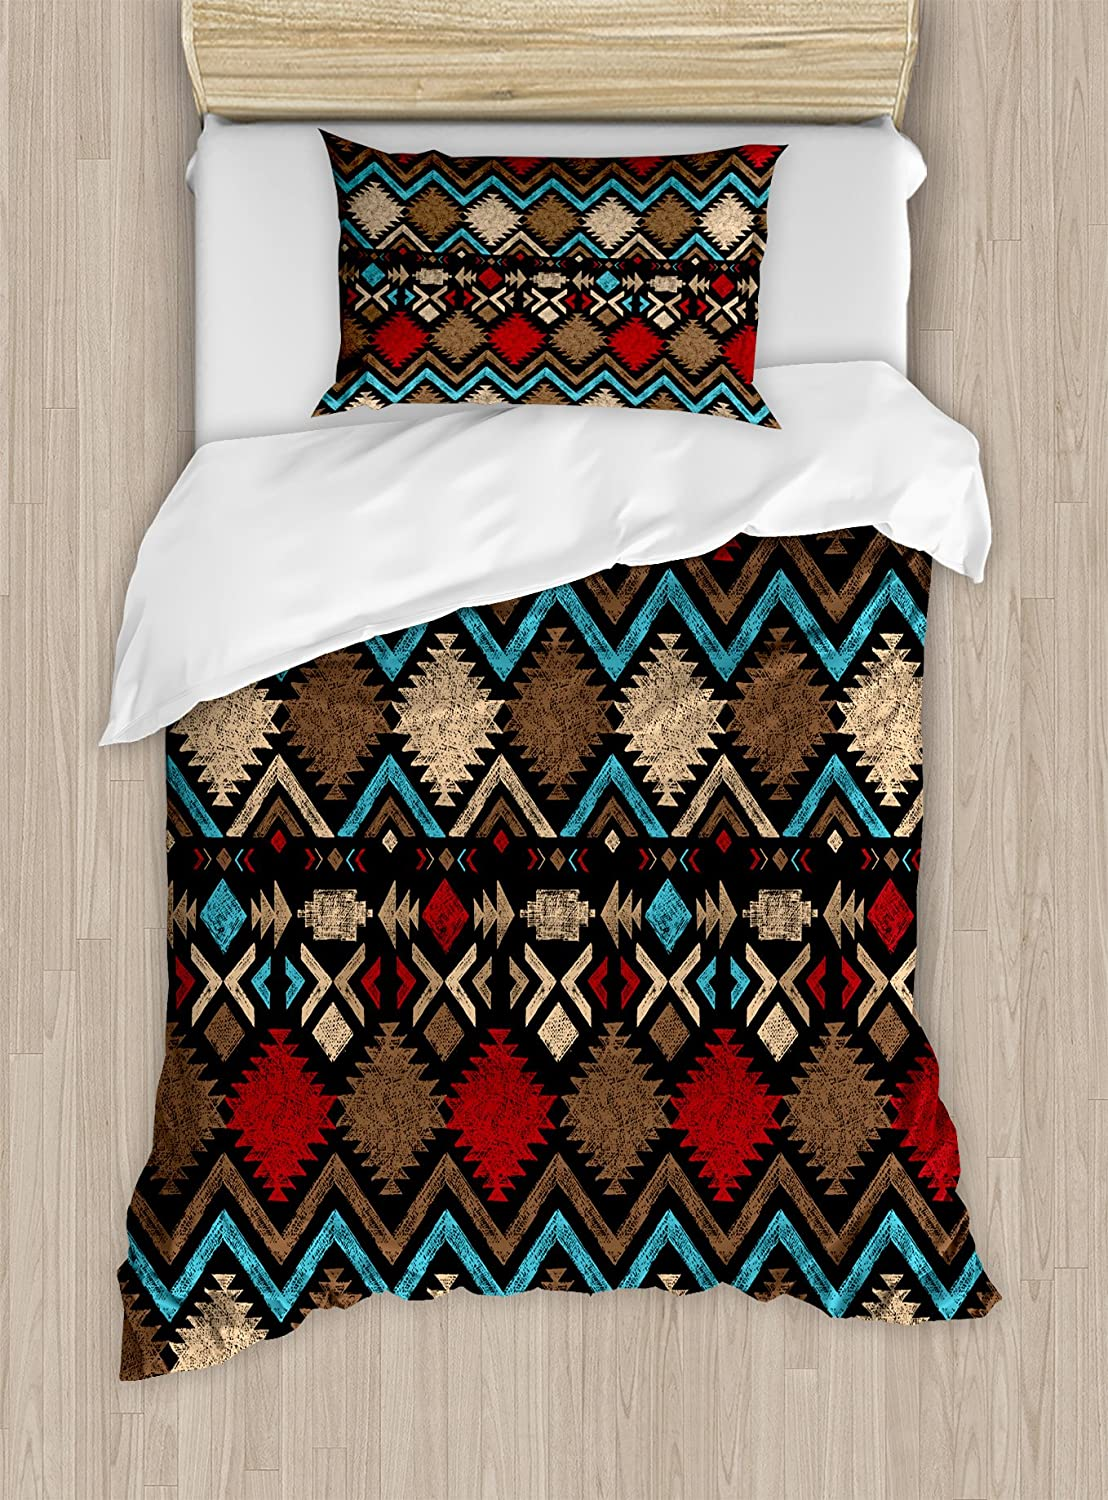 Lunarable Aztec Duvet Cover Set, Design Abstract Colorful Shapes Latin American Inspired Print, Decorative 2 Piece Bedding Set with 1 Pillow Sham, Twin Size, Brown Blue